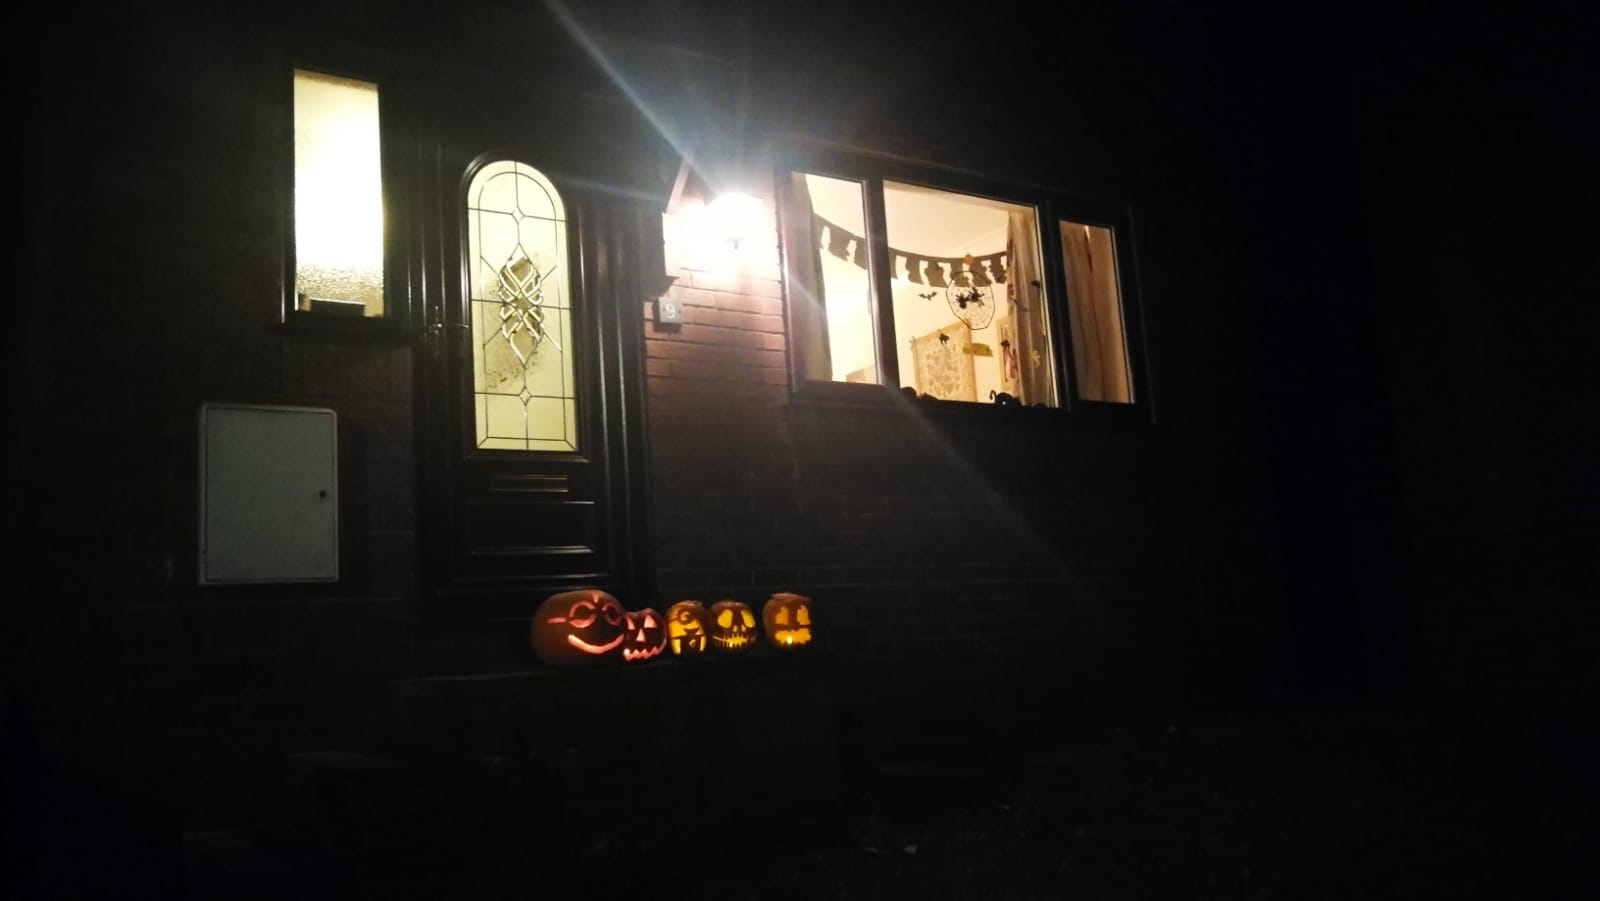 house-in-ormskirk-halloween-2019-3